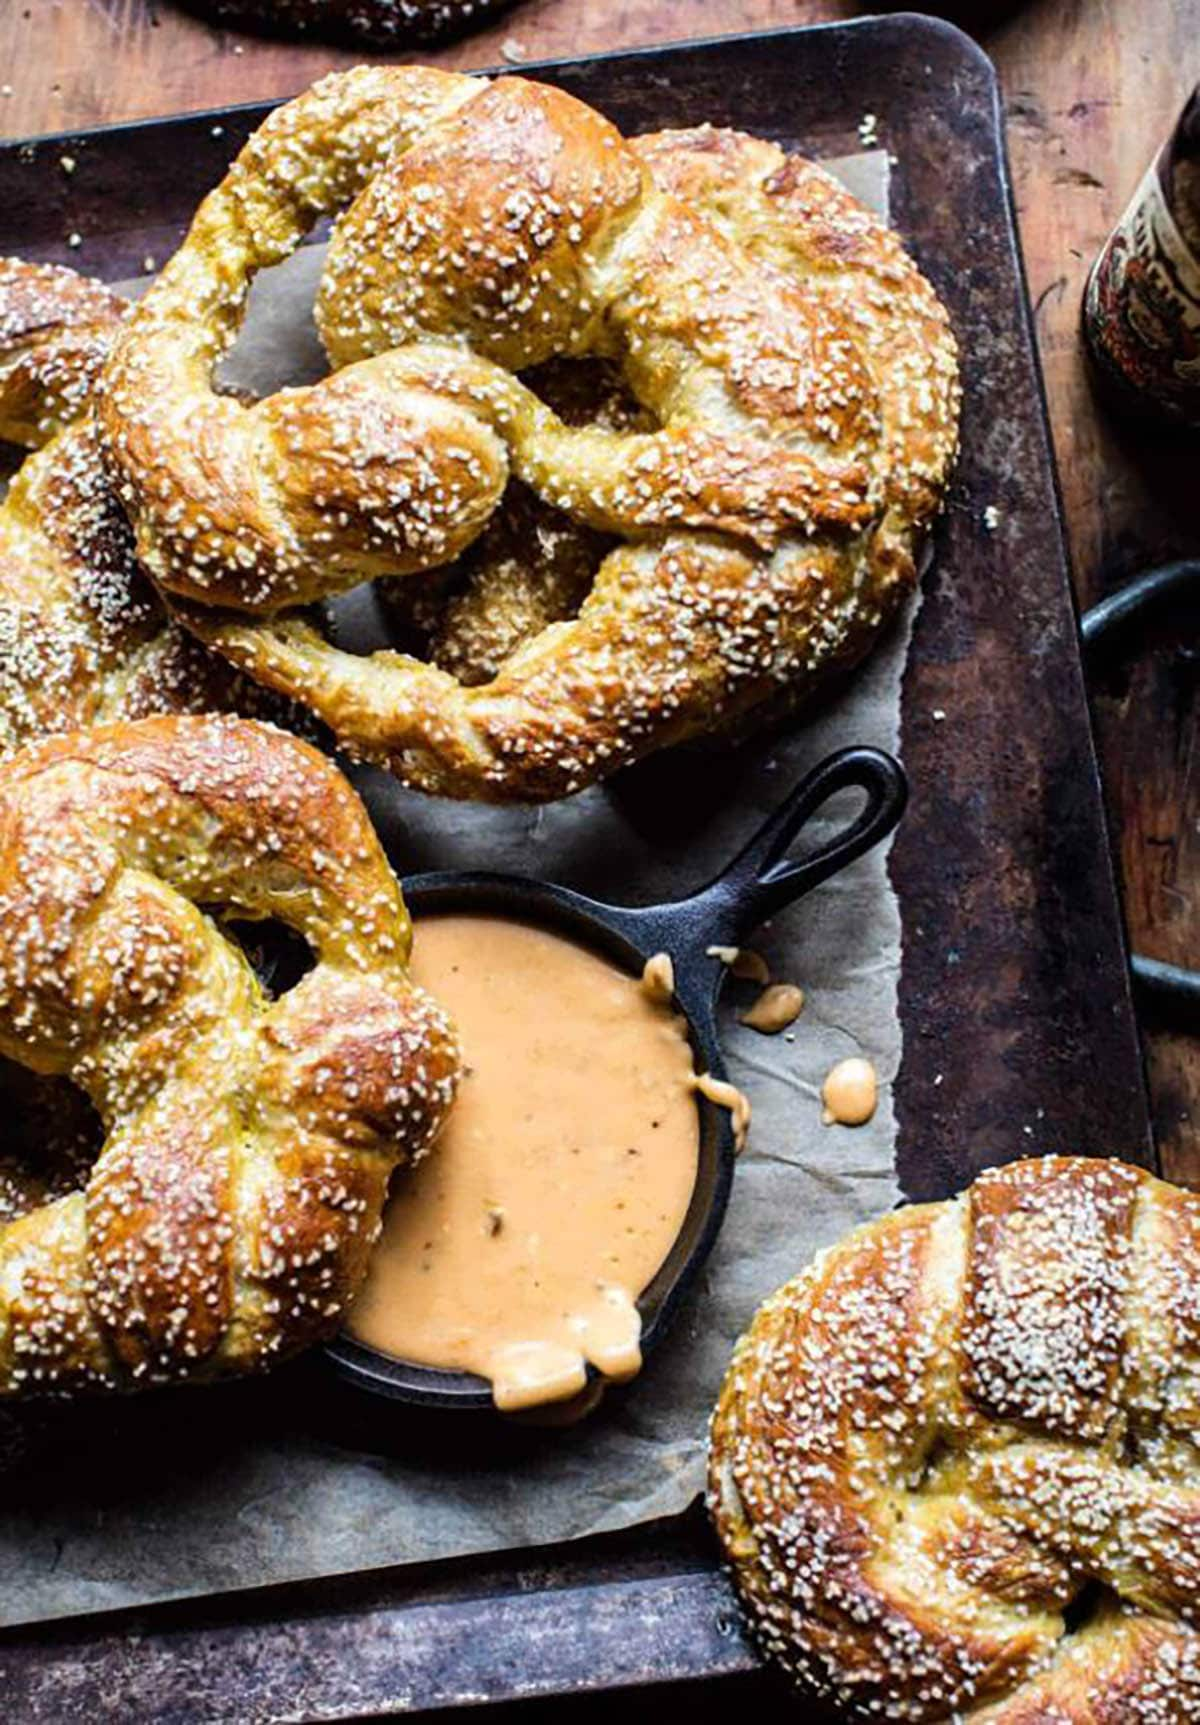 Pumpkin beer pretzel with melted creame cheese, cheddar, milk and chipotle peppers.